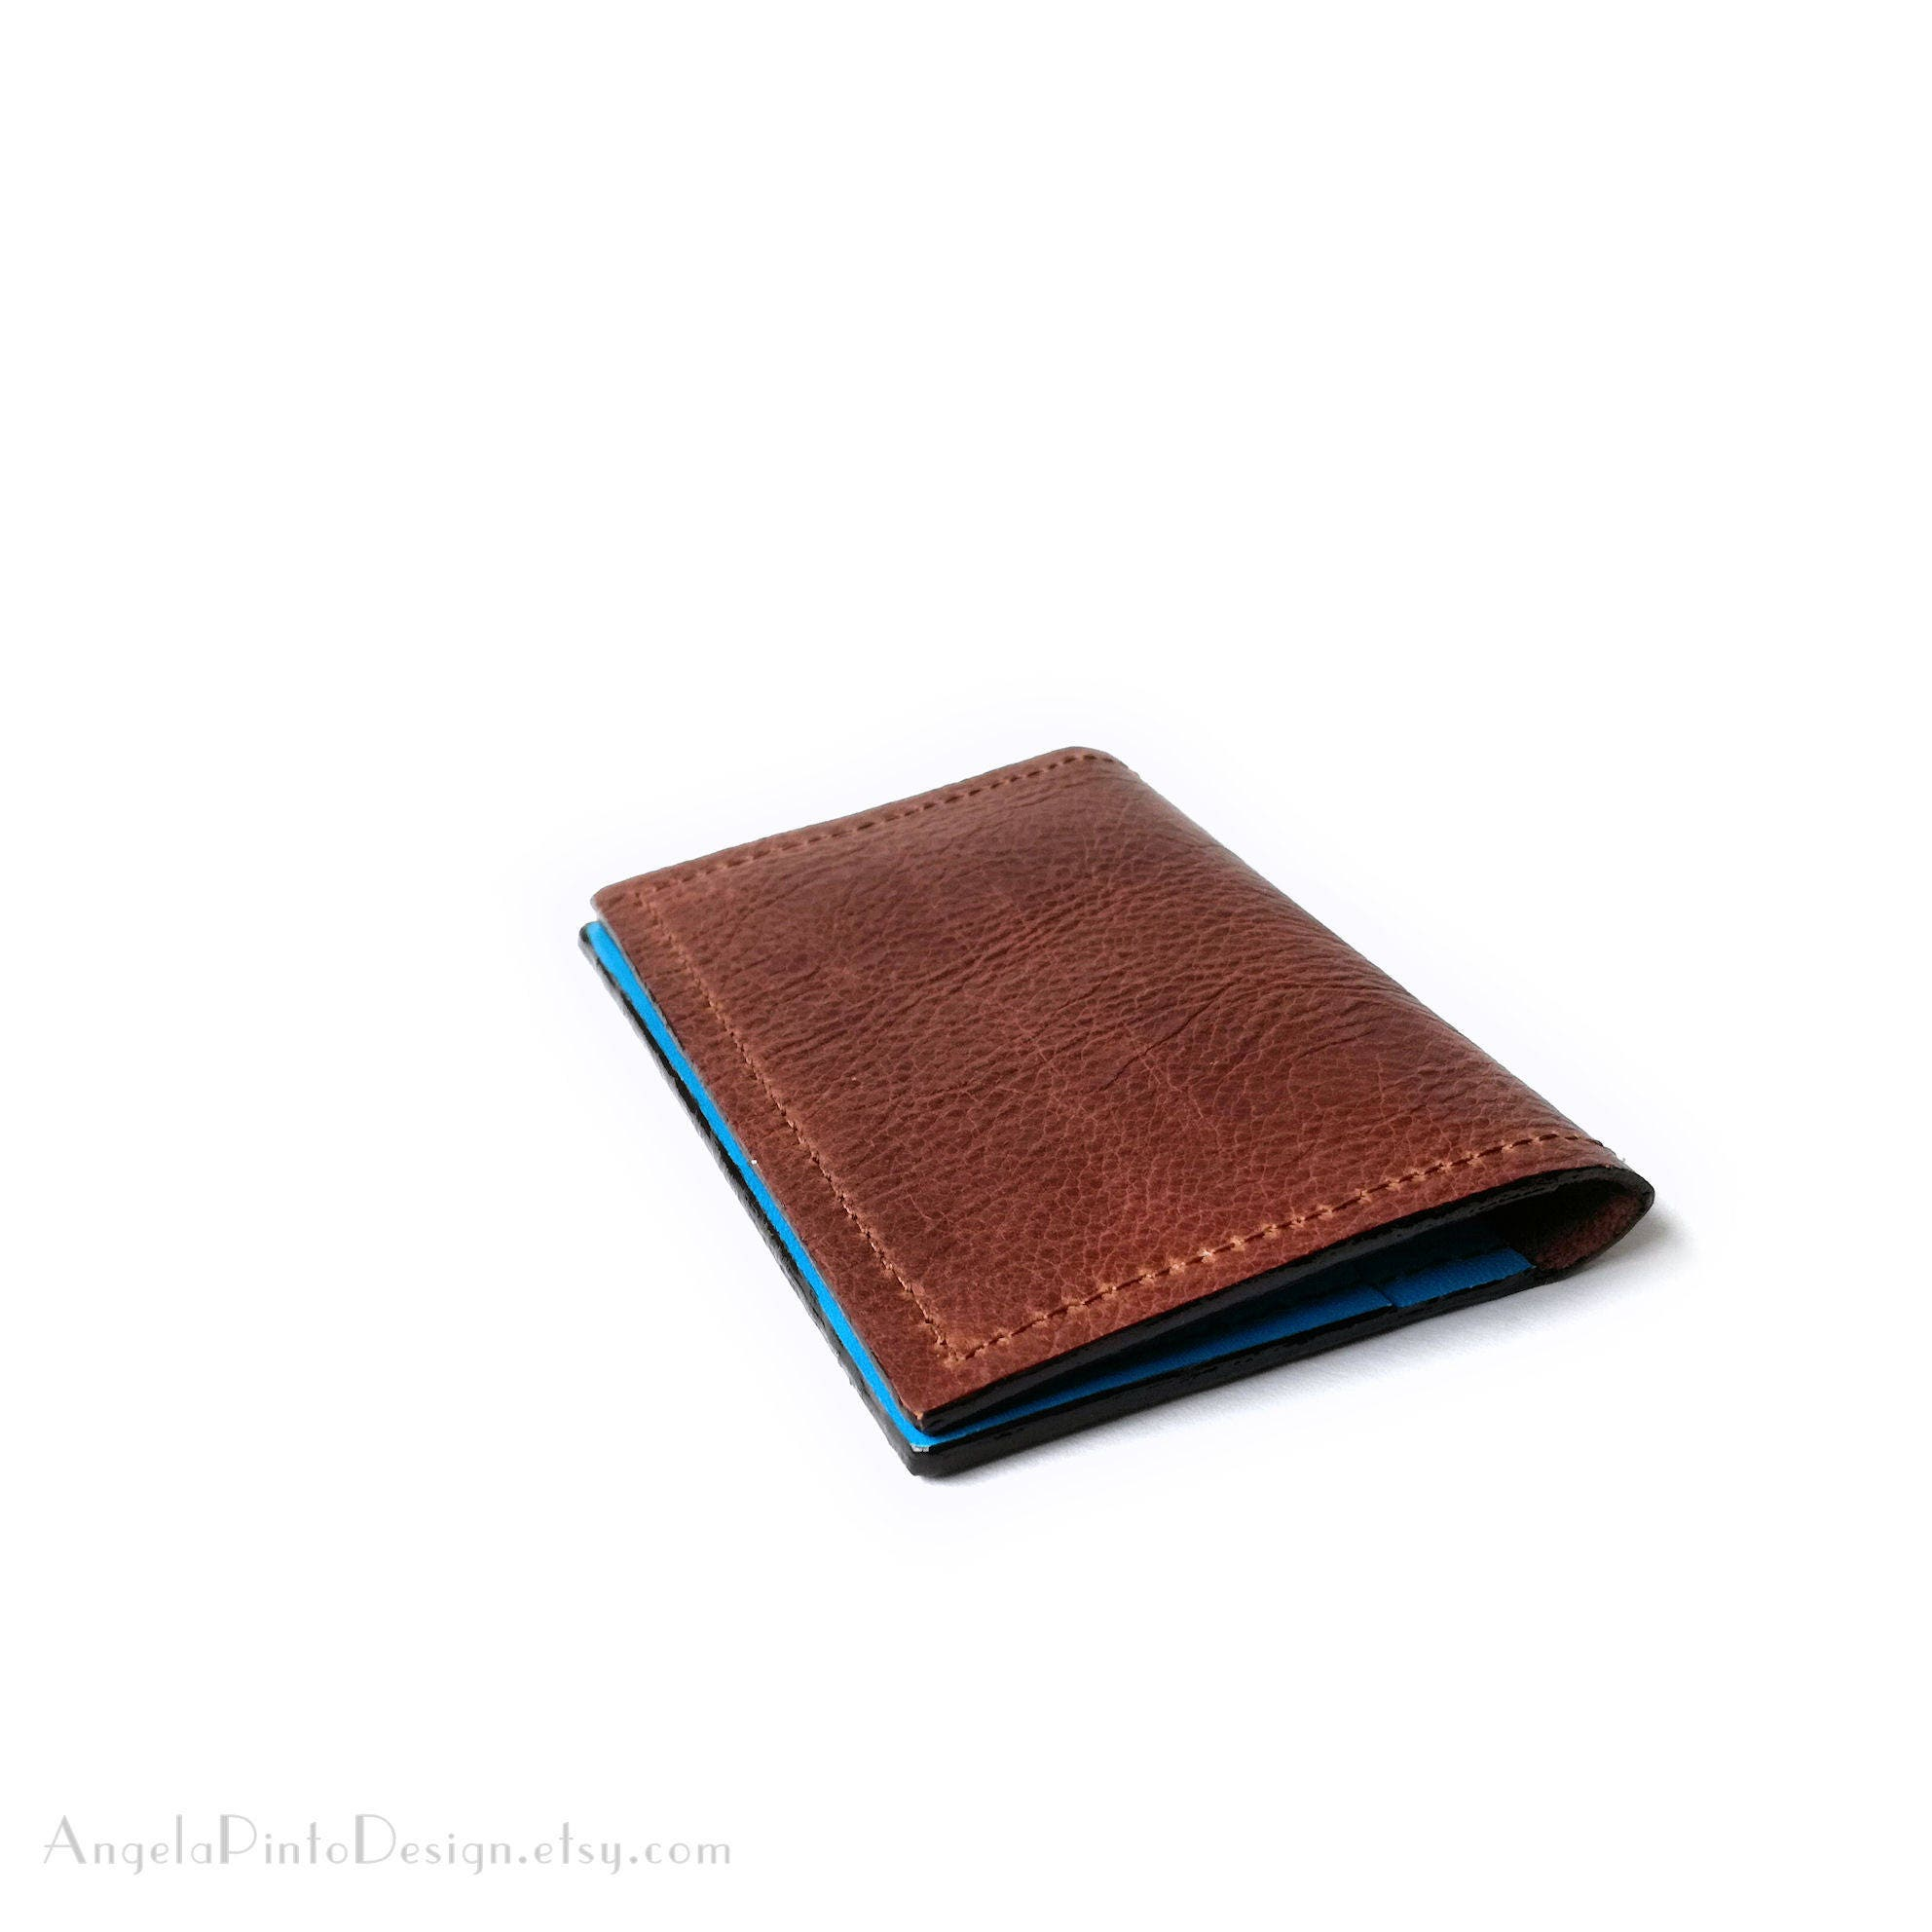 Leather card holder in brown and bright blue womens card case mens leather card holder in brown and bright blue womens card case mens leather card colourmoves